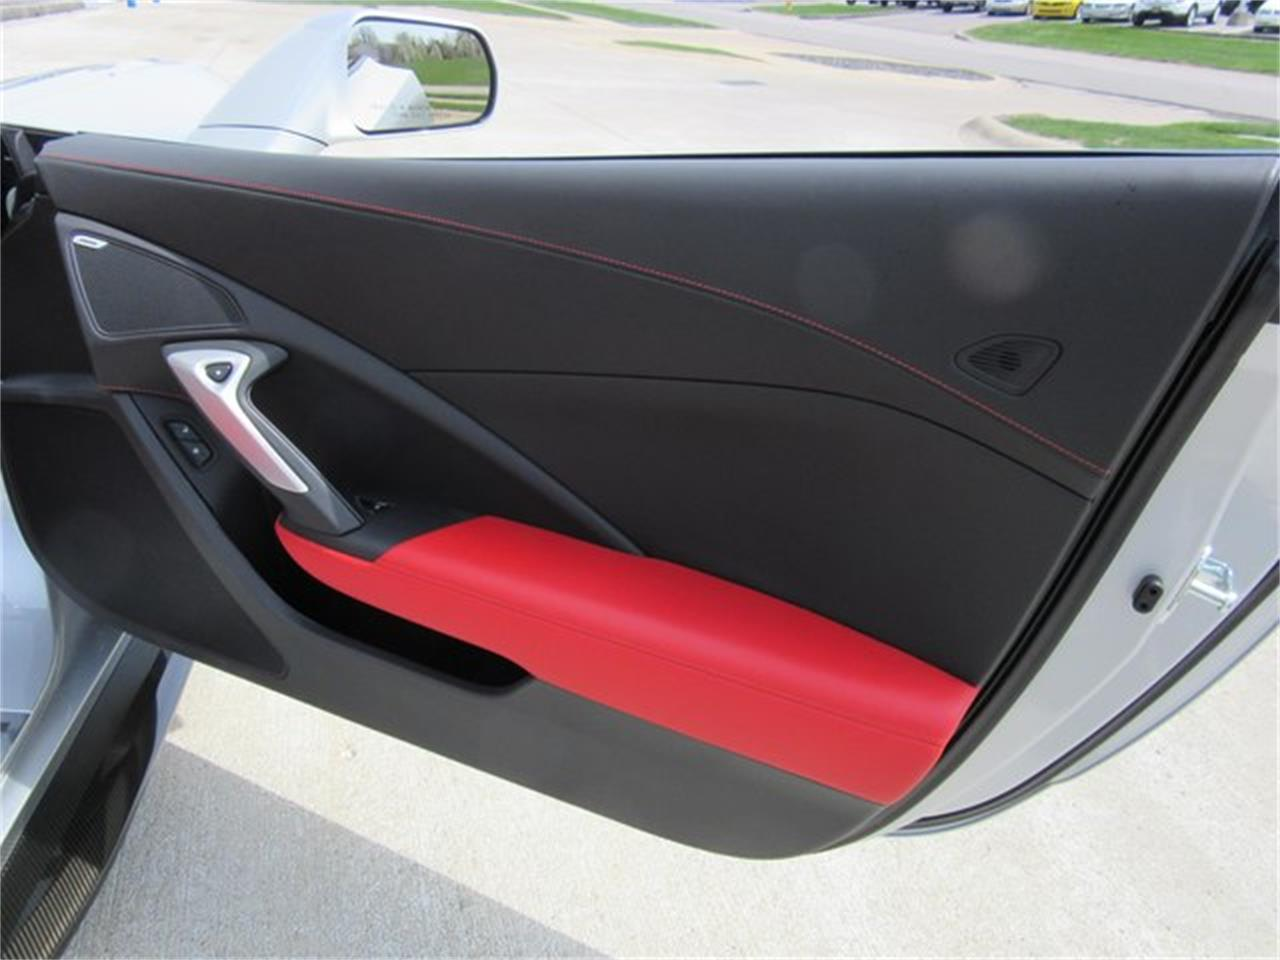 Large Picture of 2015 Chevrolet Corvette located in Greenwood Indiana - $75,000.00 - PW9R